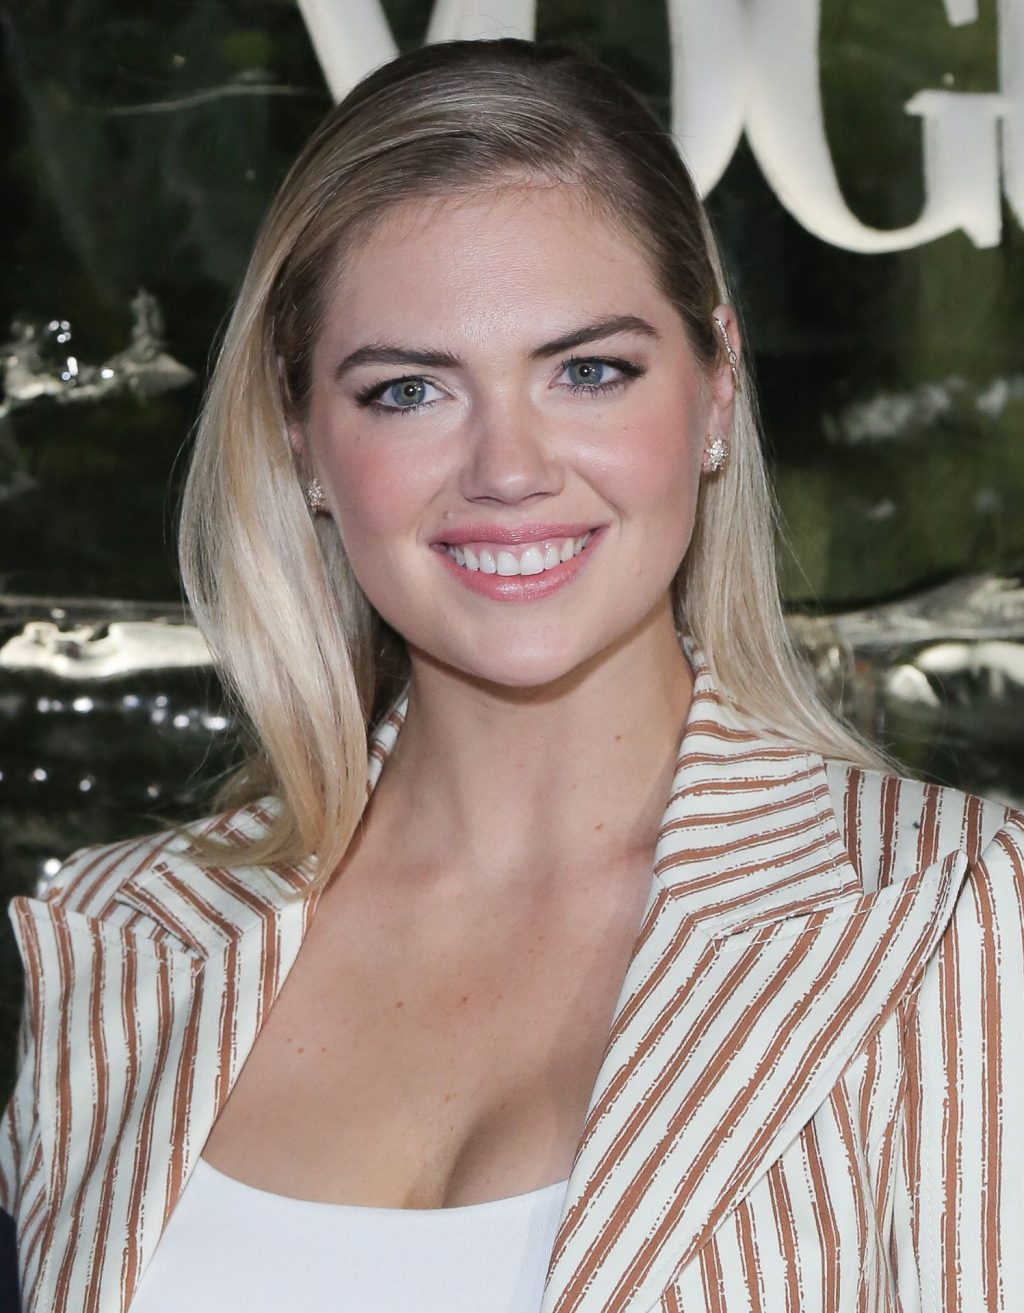 Kate Upton Sexy The Fappening Blog 56 1024x1313 - Kate Upton Attends Canada Goose And Vogue Cocktails & Conversations (104 Photos)